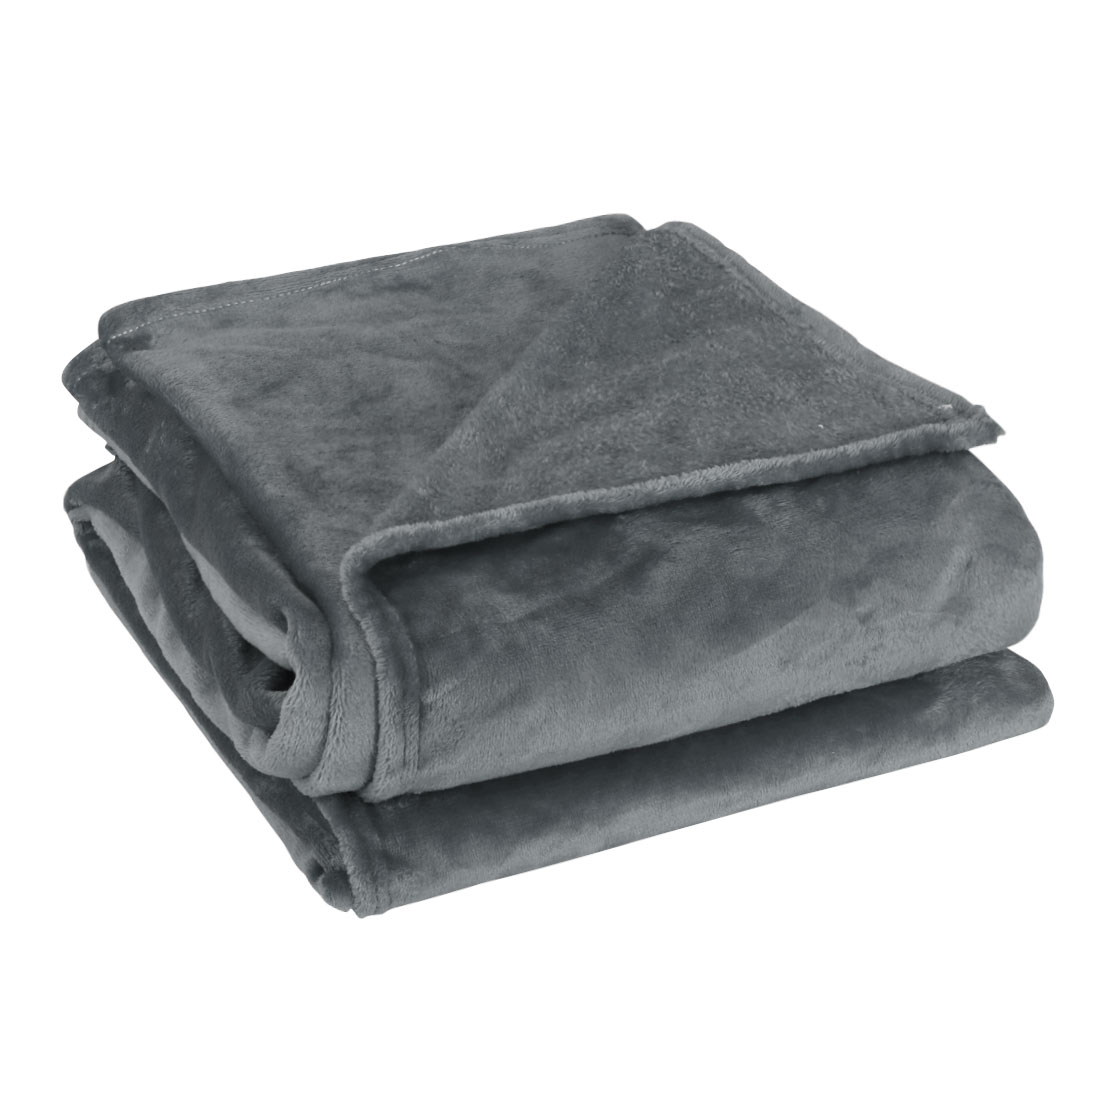 230 x 250cm Home Bedroom Warm Throw Blanket Rug Plush Fleece Bed Quilt Sofa Soft Pure Dark Gray